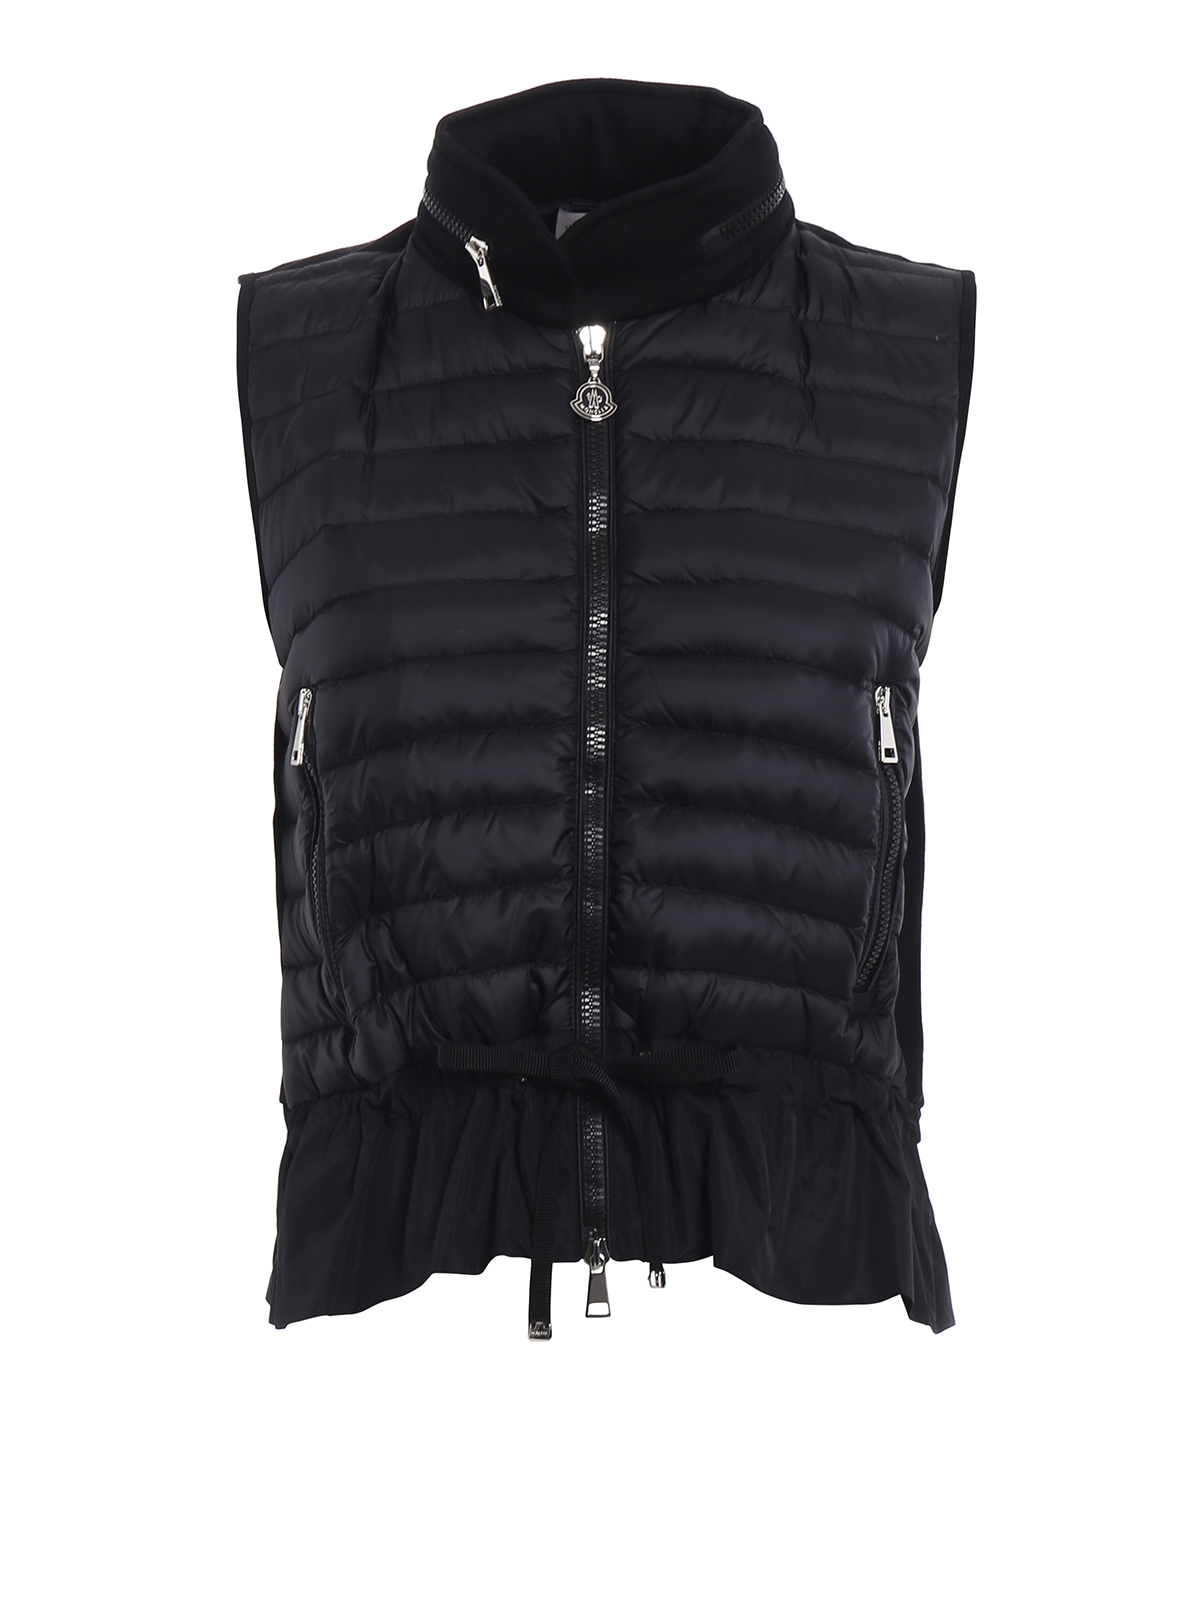 MONCLER: waistcoats & gilets - Black cotton and padded nylon gilet